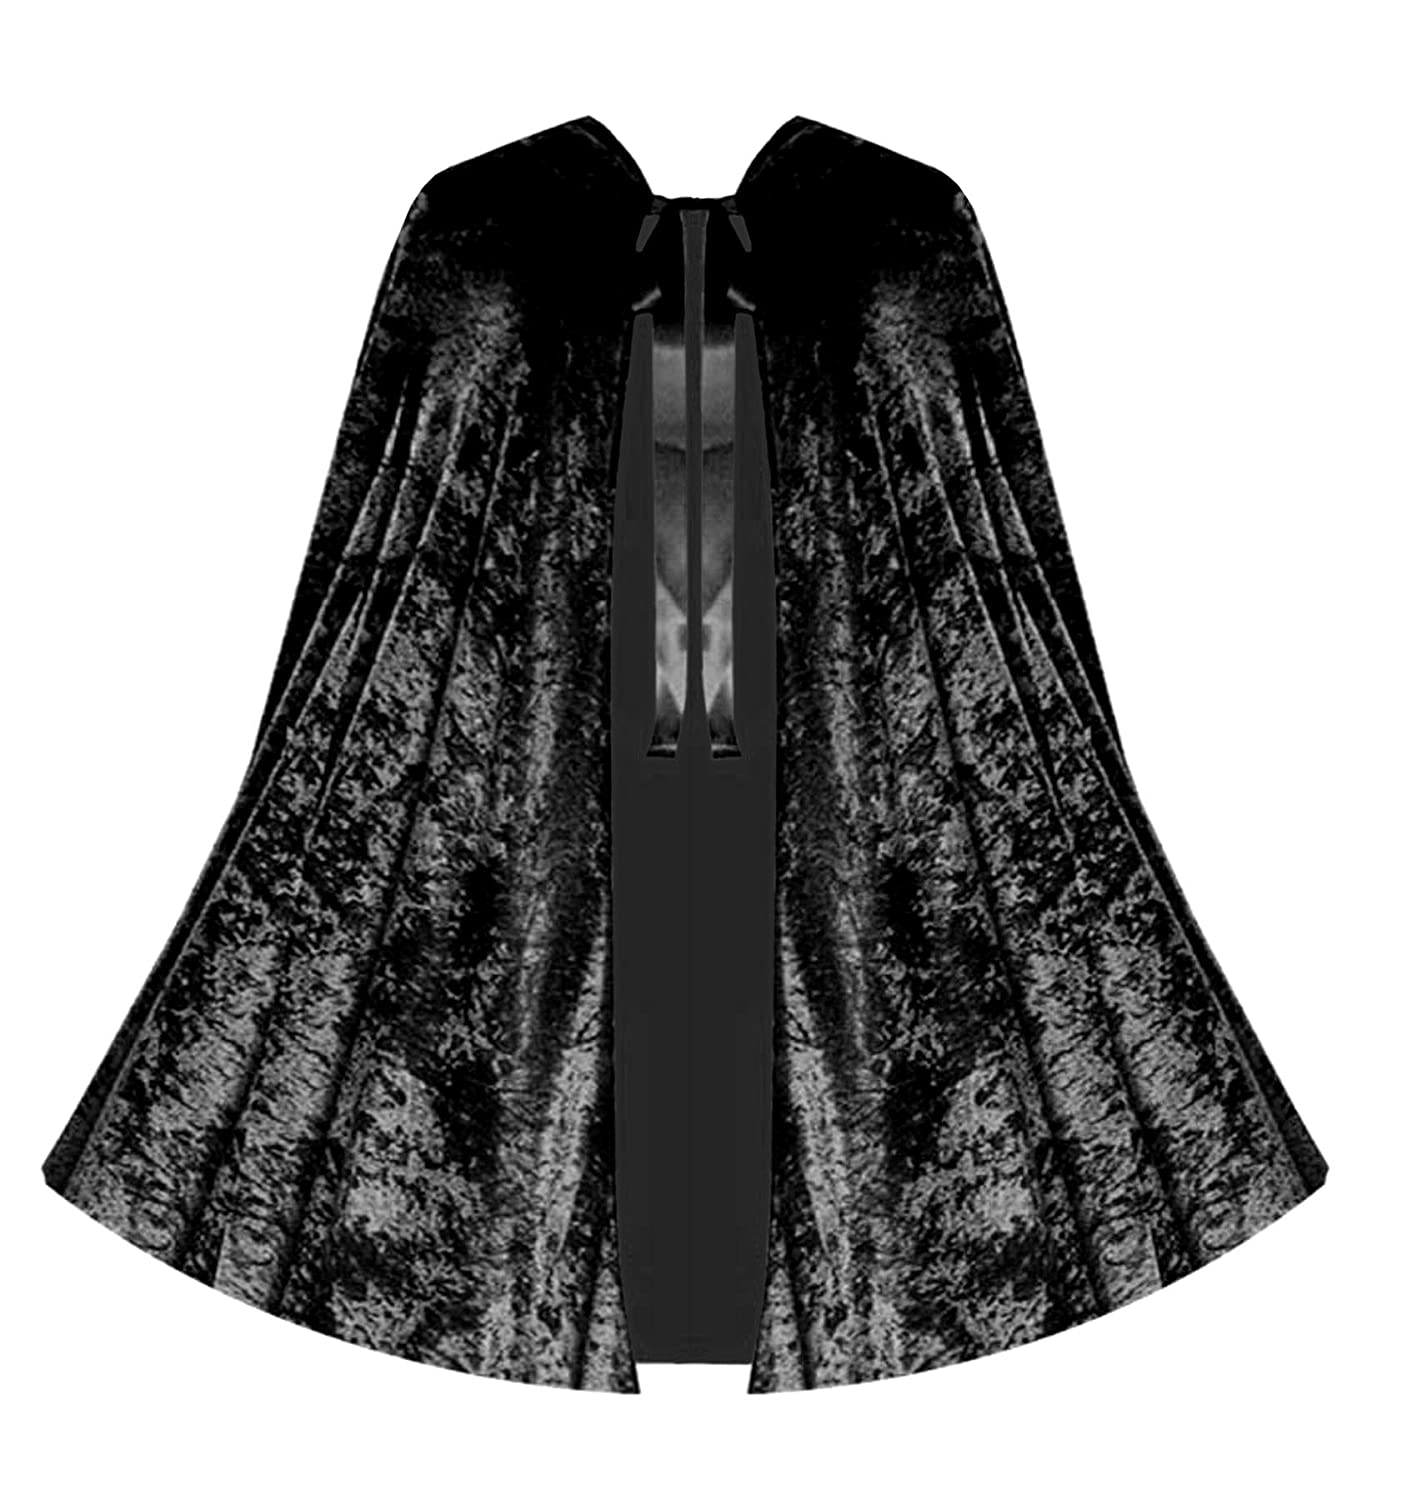 Victorian Wraps, Capes, Shawl, Capelets Victorian Vagabond Gothic Game of Thrones Renaissance Steampunk Velvet Capelet Black $46.00 AT vintagedancer.com